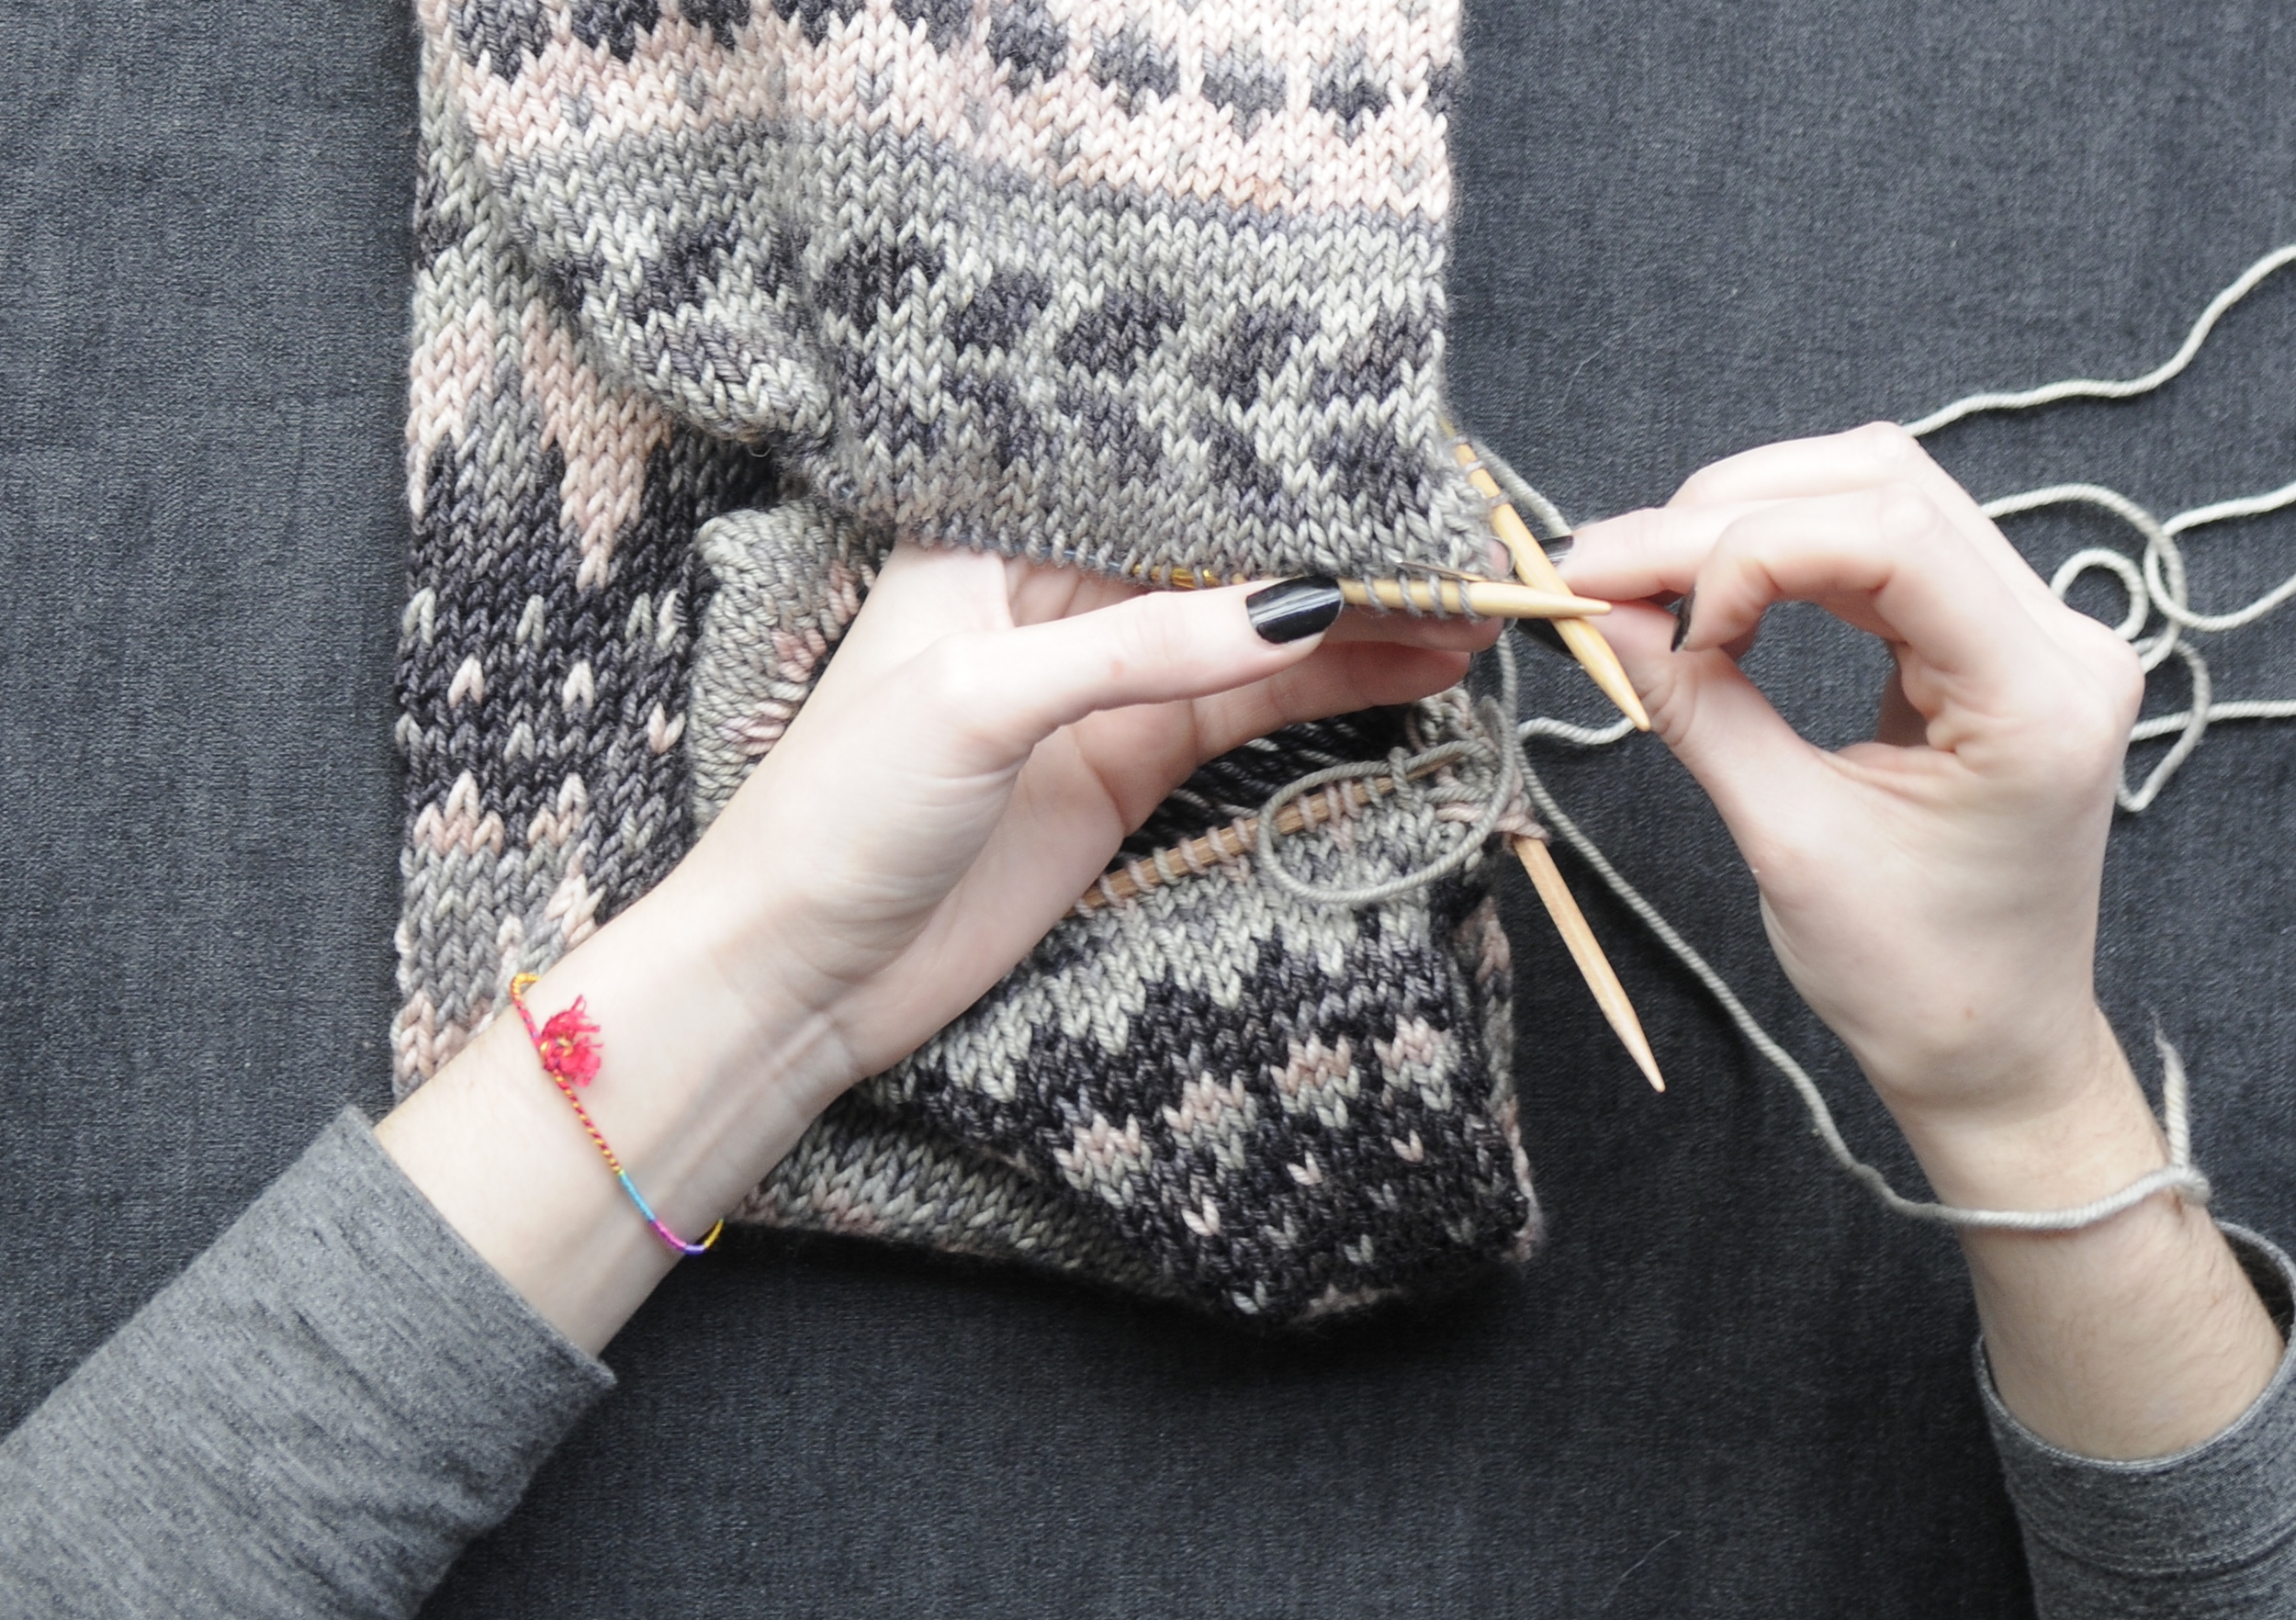 5. Now insert the darning needle as if to knit, into the first stitch on TN. Continue to gently pull your thread snug as you work across the stitches.